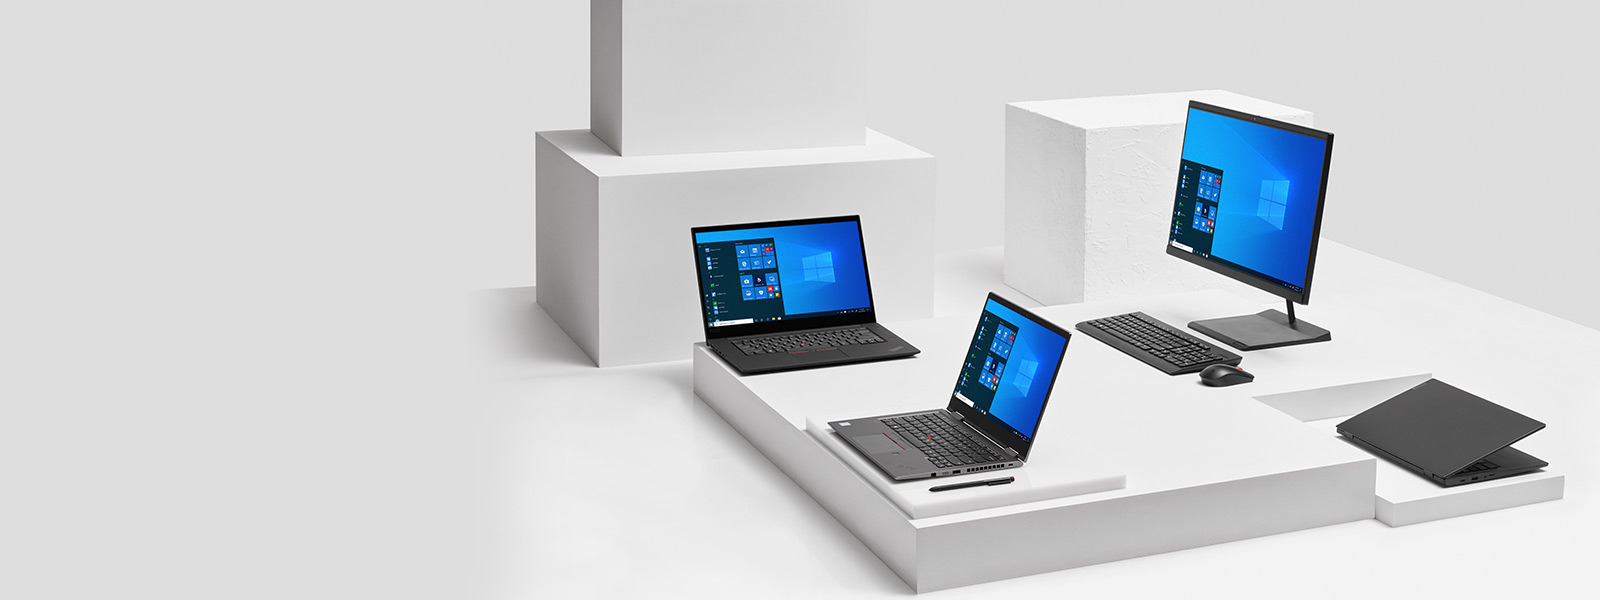 Lenovo family of devices with Windows 10 Pro start screens